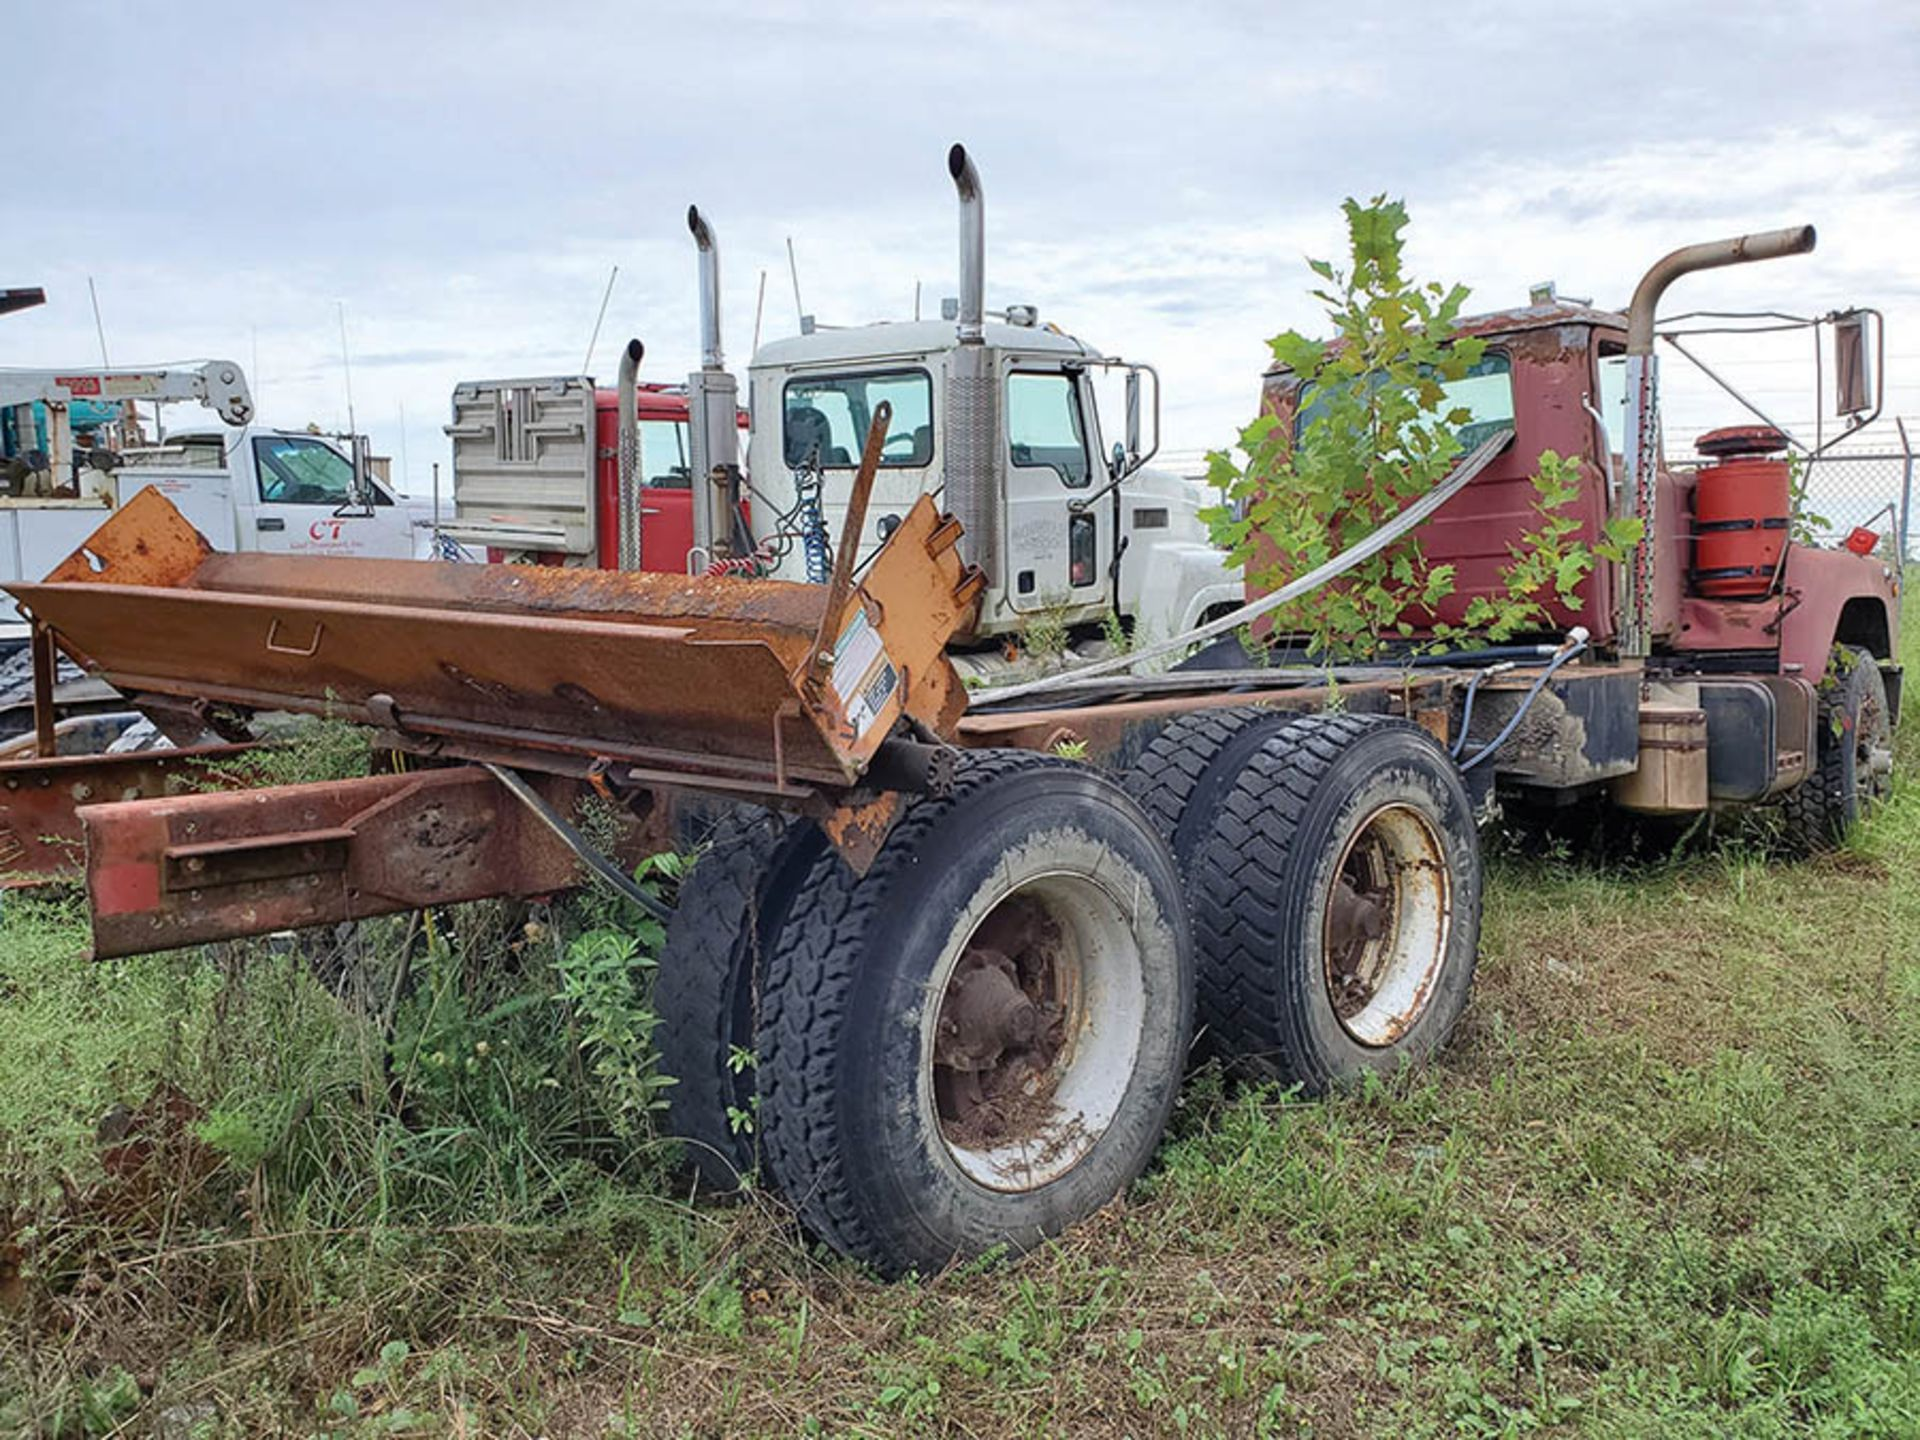 Lot 25 - MACK T/A DAY CAB TRACTOR, VIN DM6855X36404, CT 78, LOCATION: MARCO SHOP